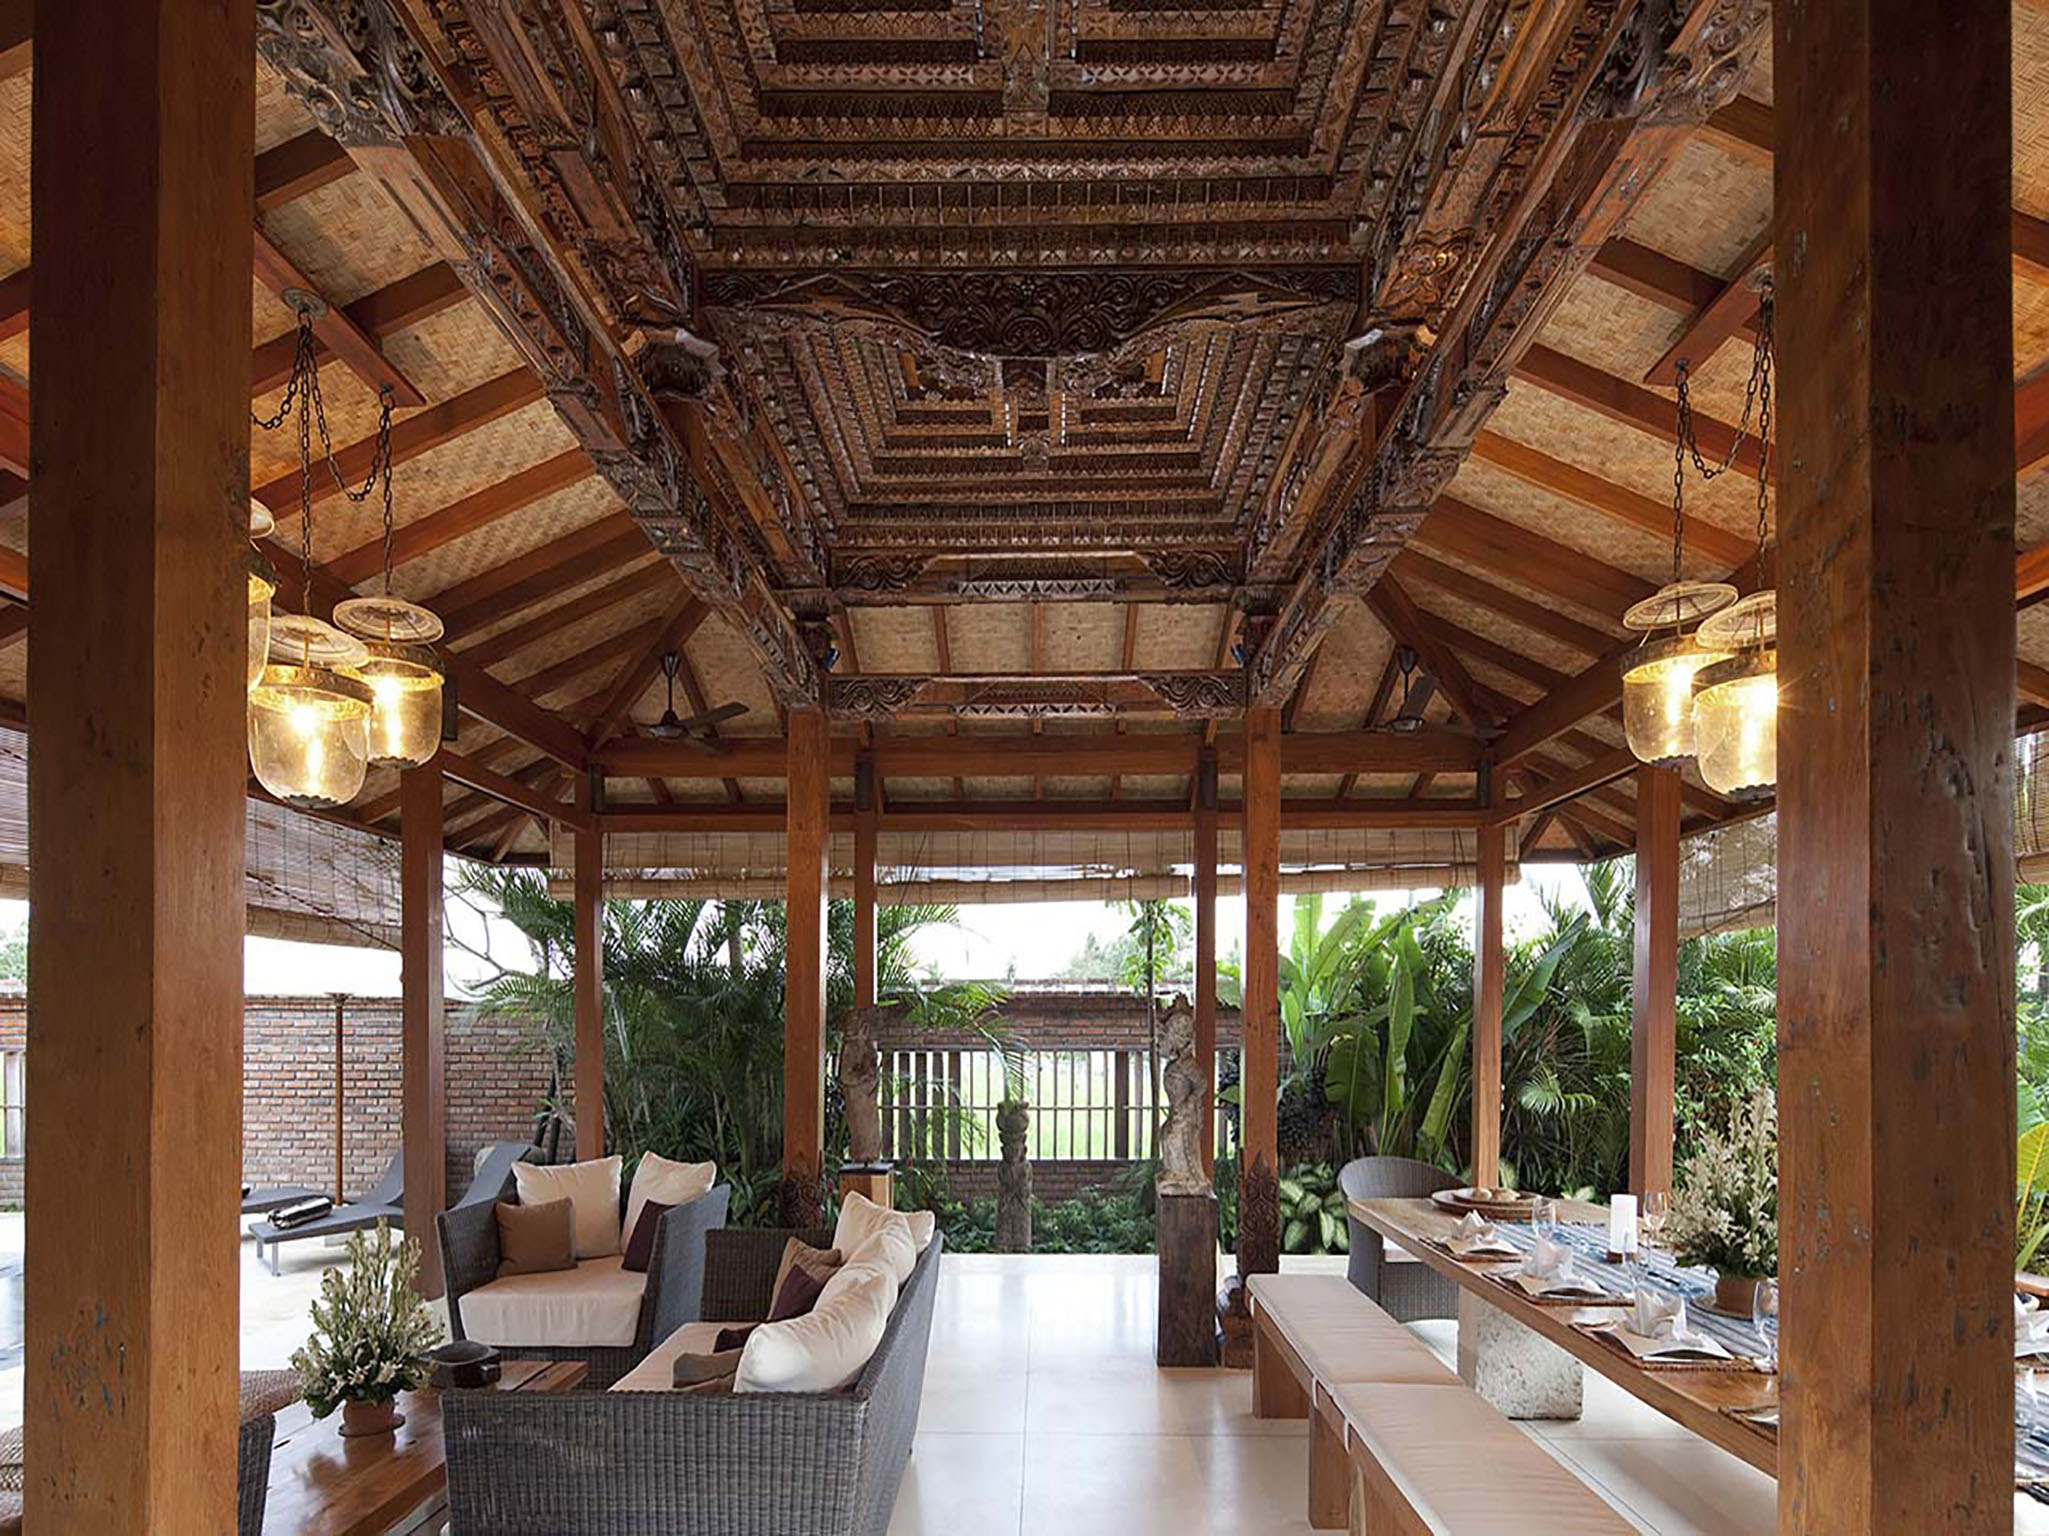 Villa Amy - Living and dining areas - Dea Villas - Villa Amy, Canggu, Bali